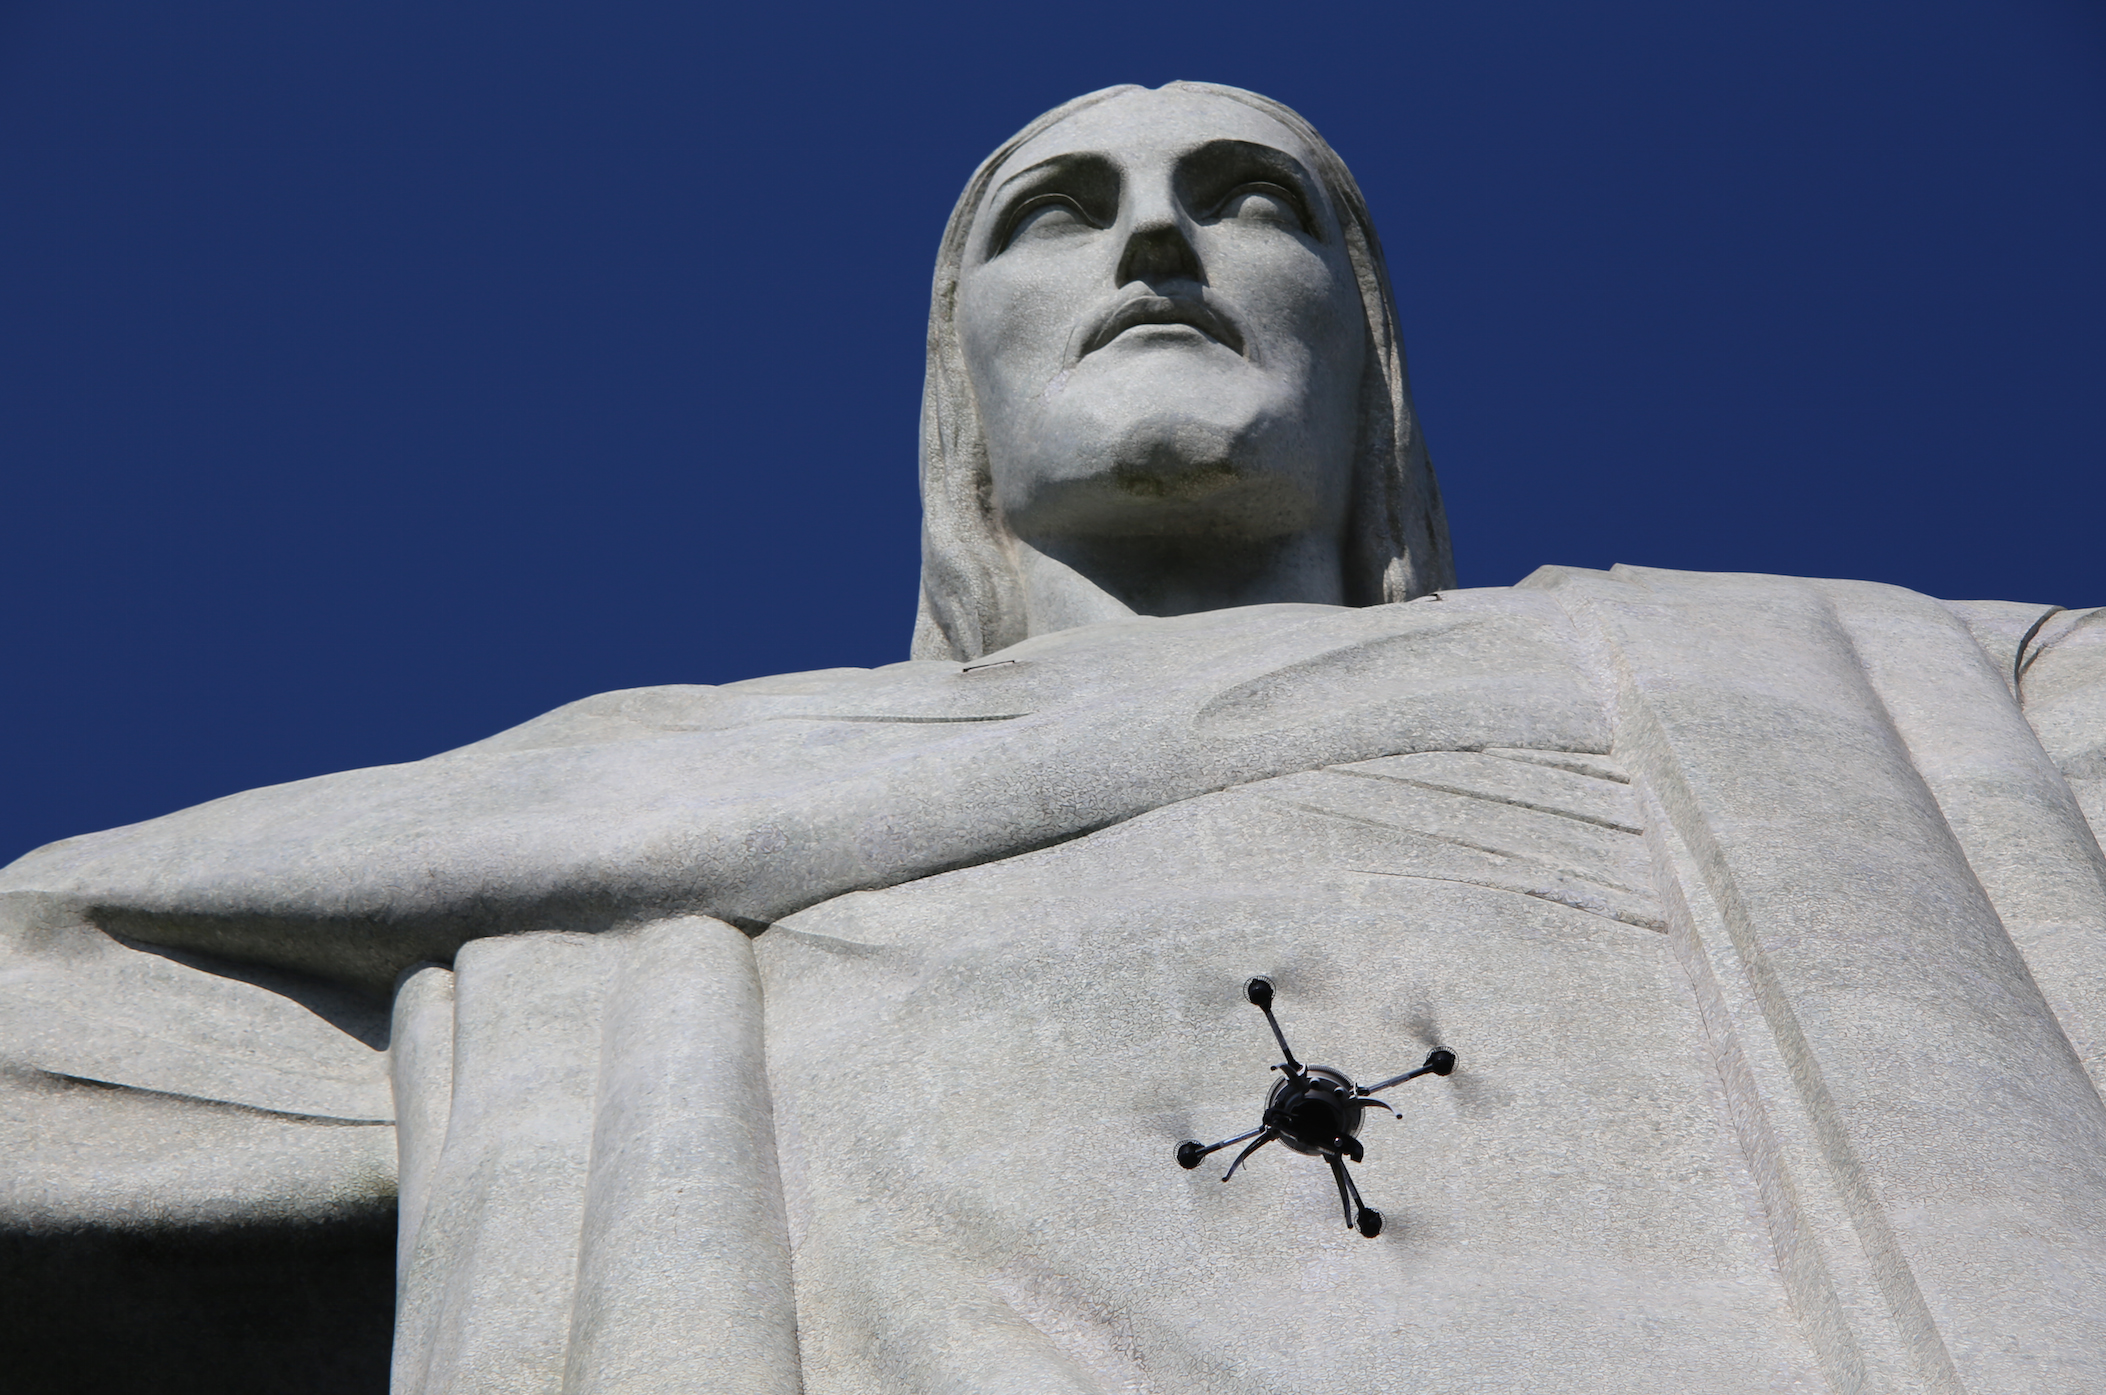 Mapping Brazil's Christ the Redeemer